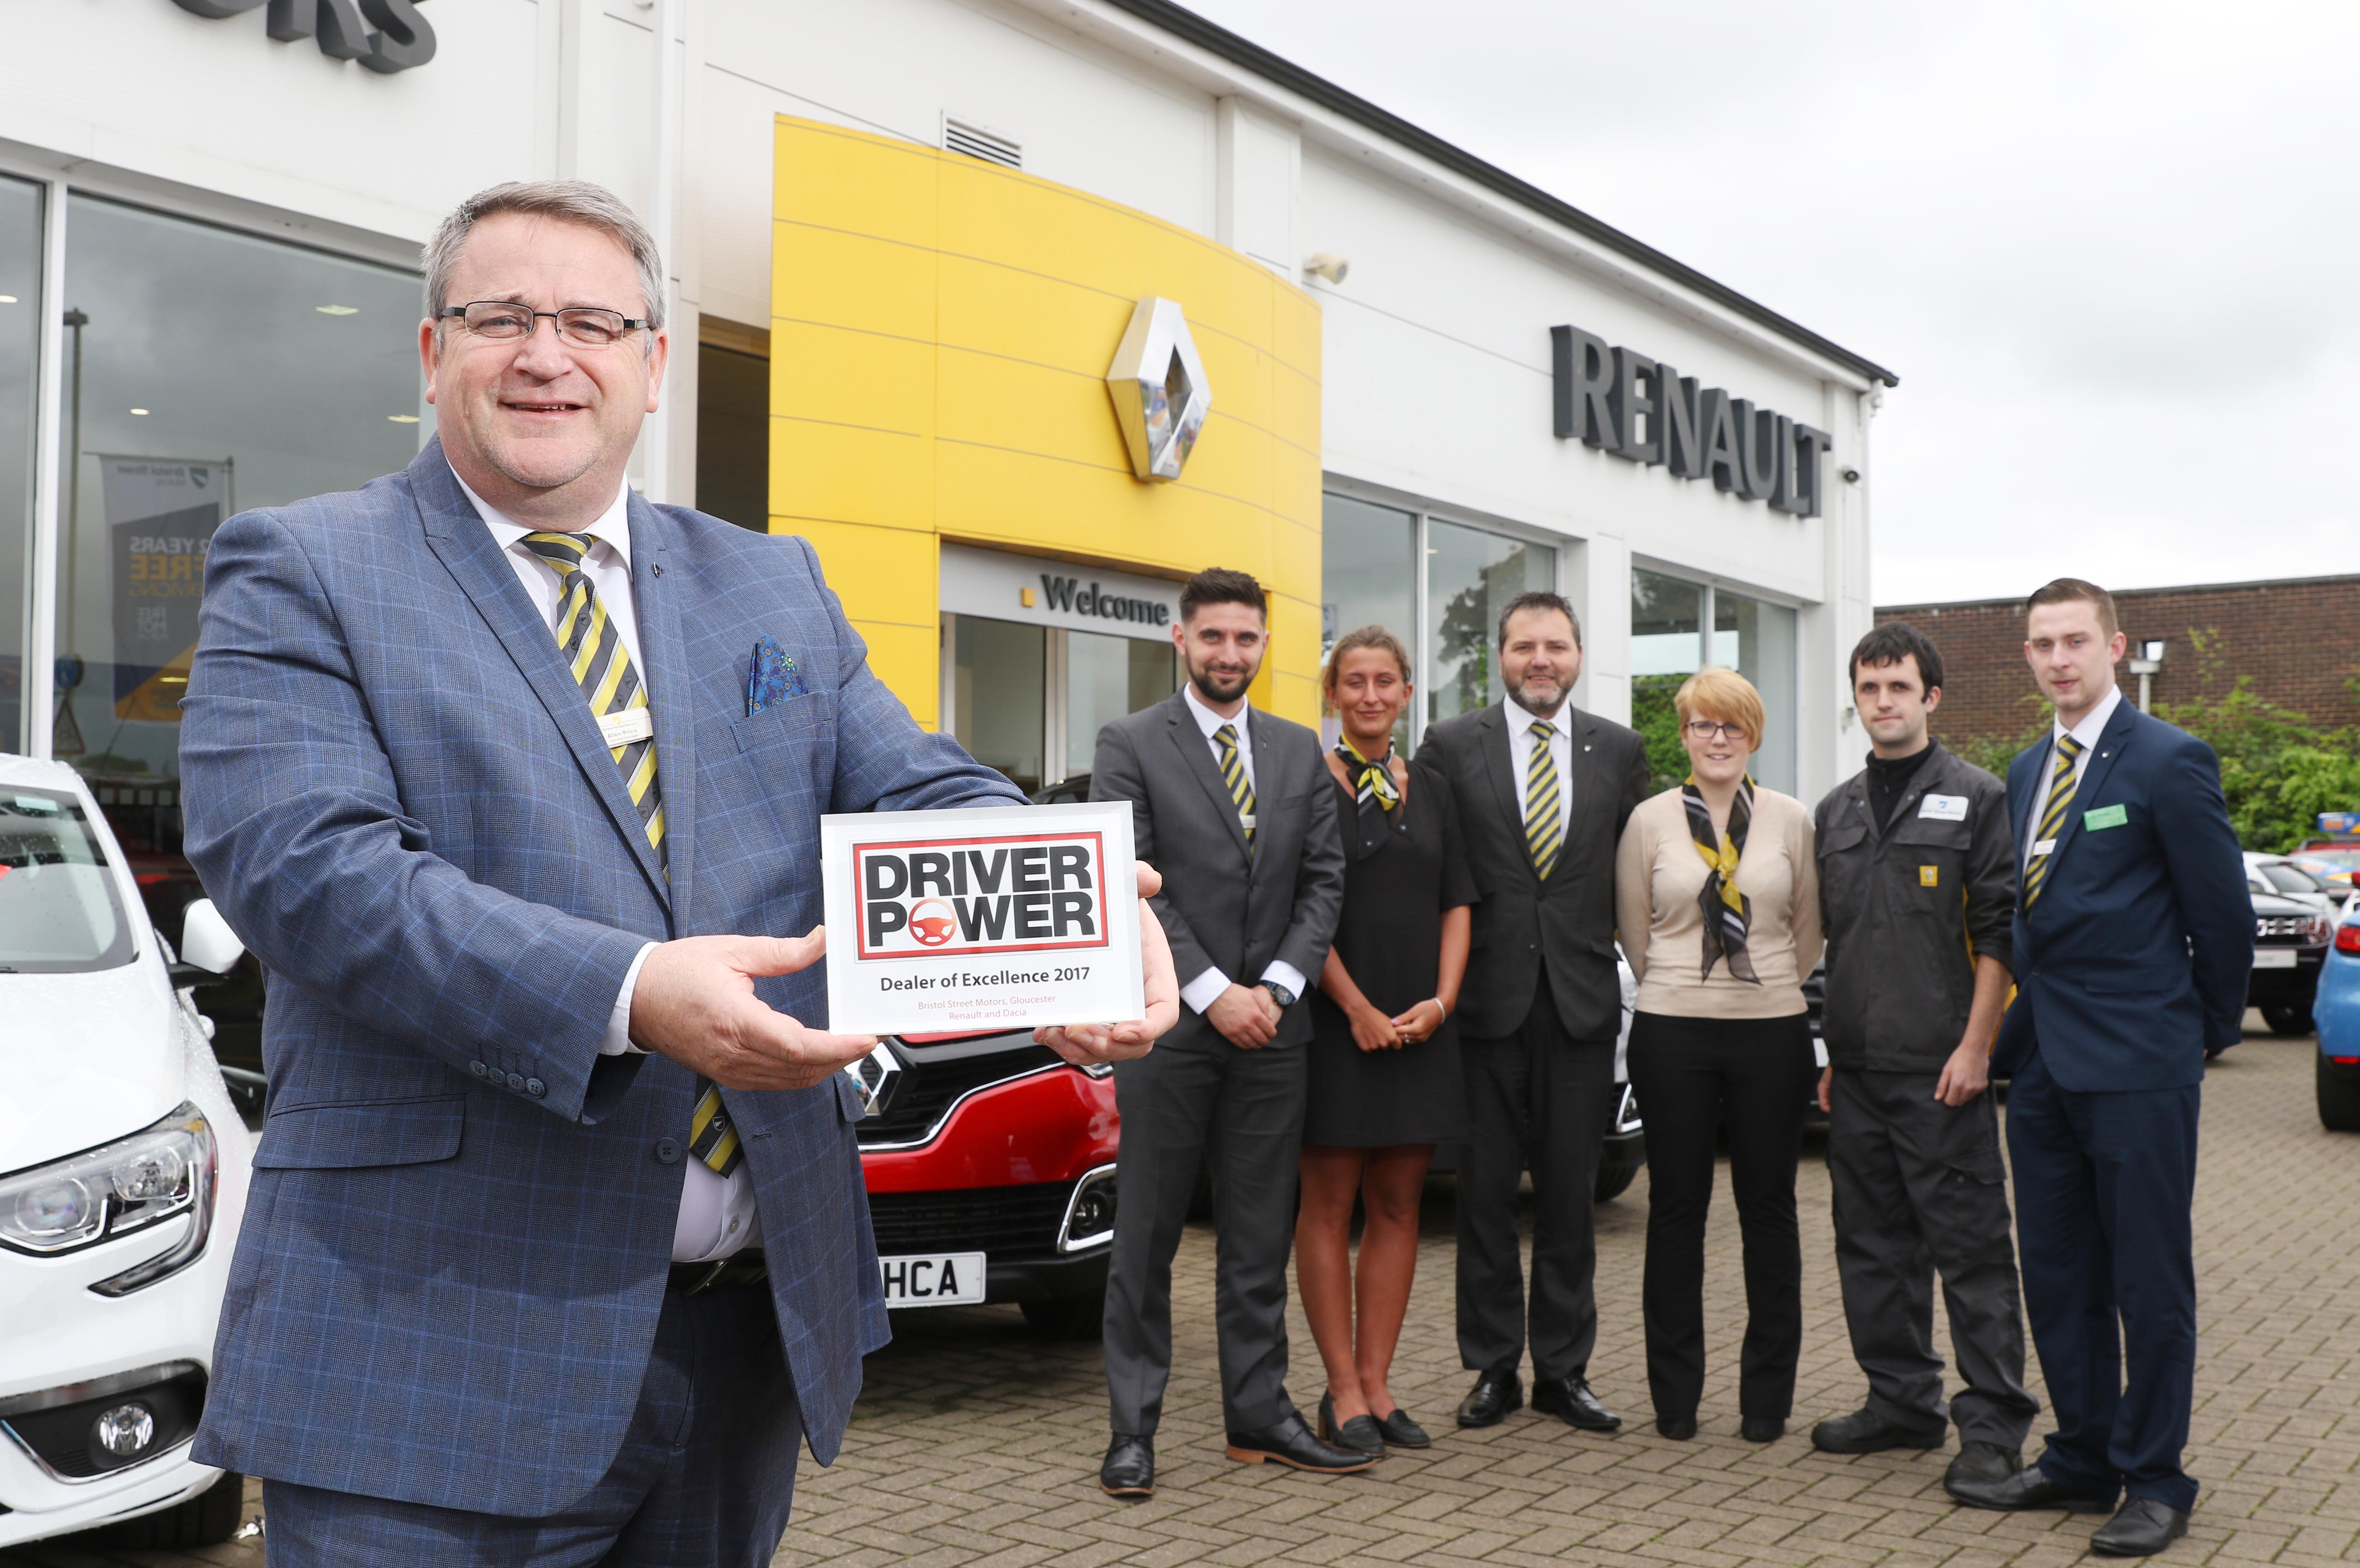 Renault Gloucester wins award hosted by Auto Express